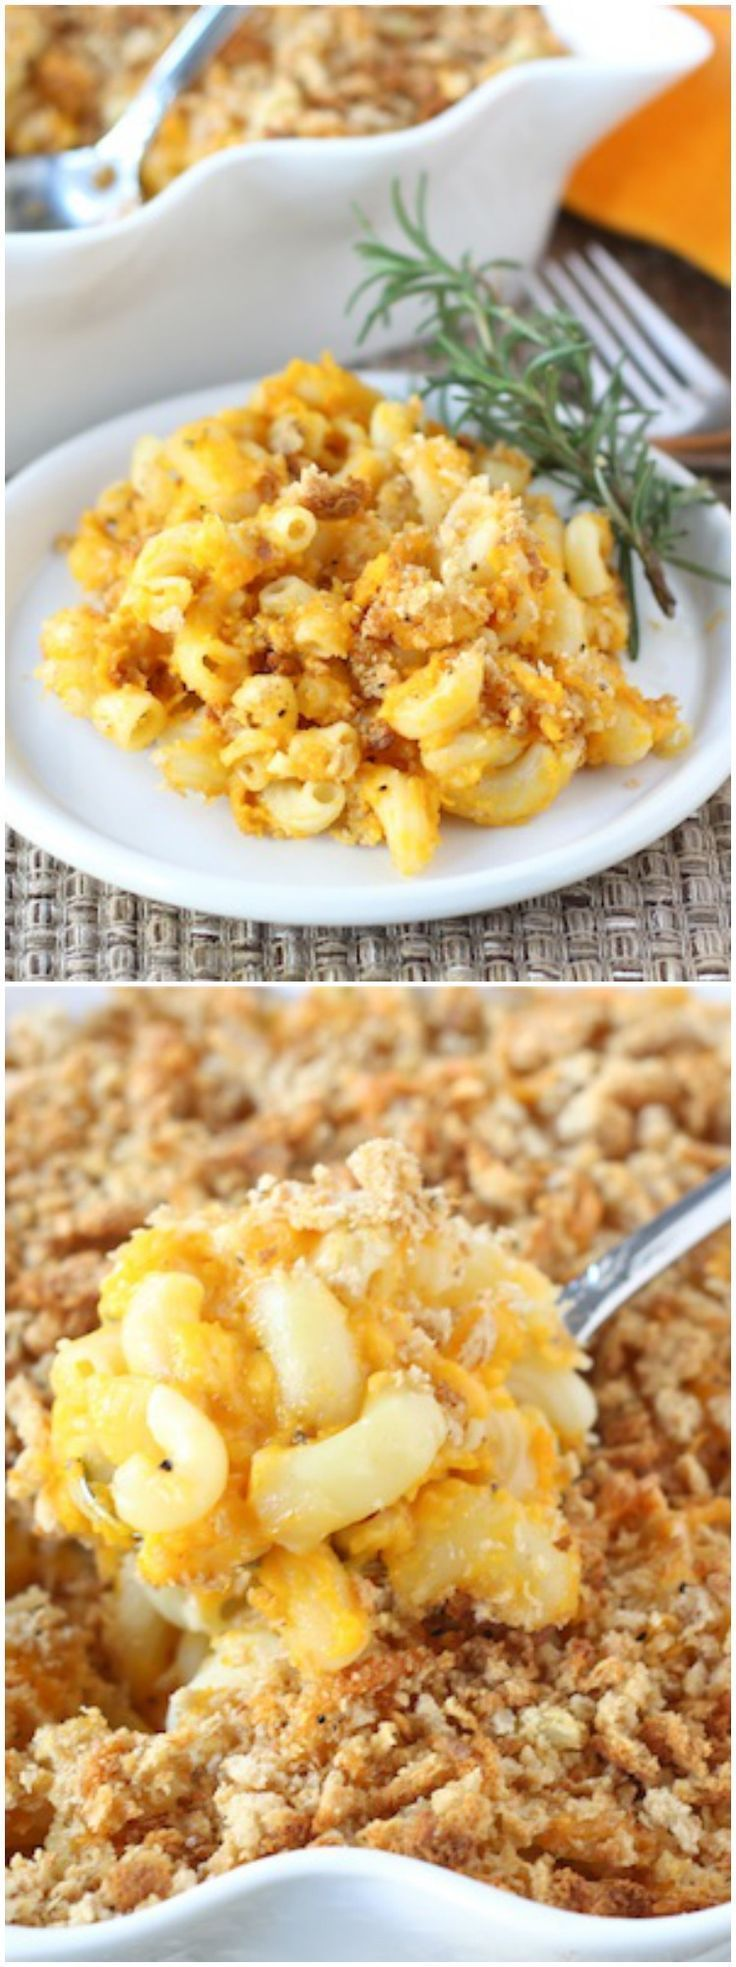 This Butternut Squash Mac and Cheese is a great meatless main dish. It is comforting, filling, and delicious. Serve it with a simple green salad and it made the perfect meal. Delicious Comfort Food Recipe!